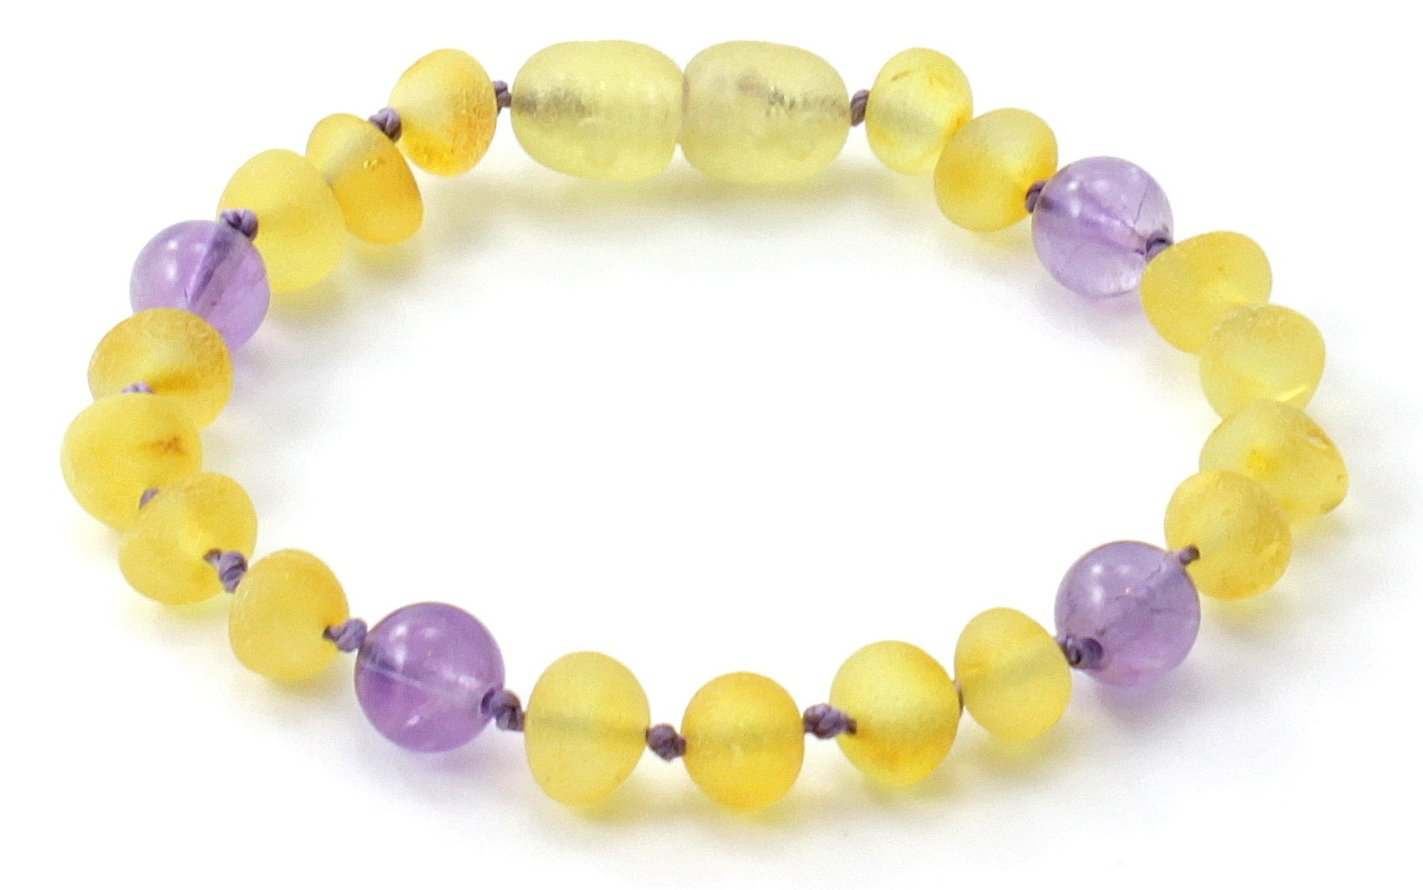 Raw Amber Teething Bracelet / Anklet made with Amethyst Beads - Size 5.5 inches (14 cm) - Unpolished Lemon Baltic Amber Beads - BoutiqueAmber (5.5 inches, Raw Lemon / Amethyst)